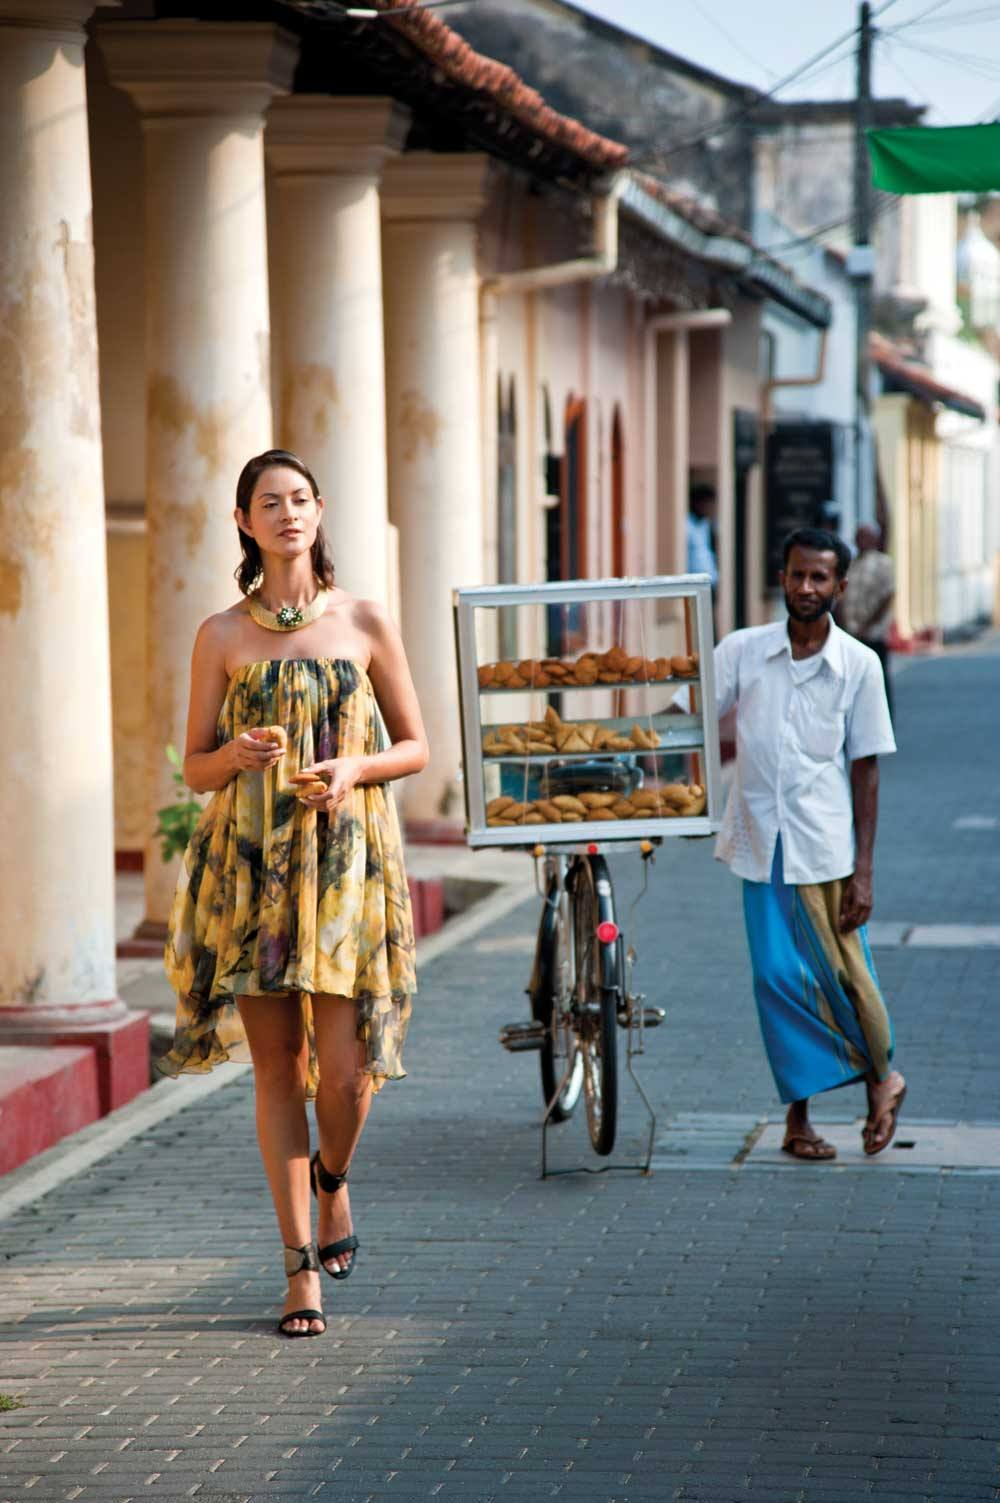 Stocking up on samosas from a Church Street vendor; dress by Justin Yap, necklace by Vasundhara, from Gnossem.com.